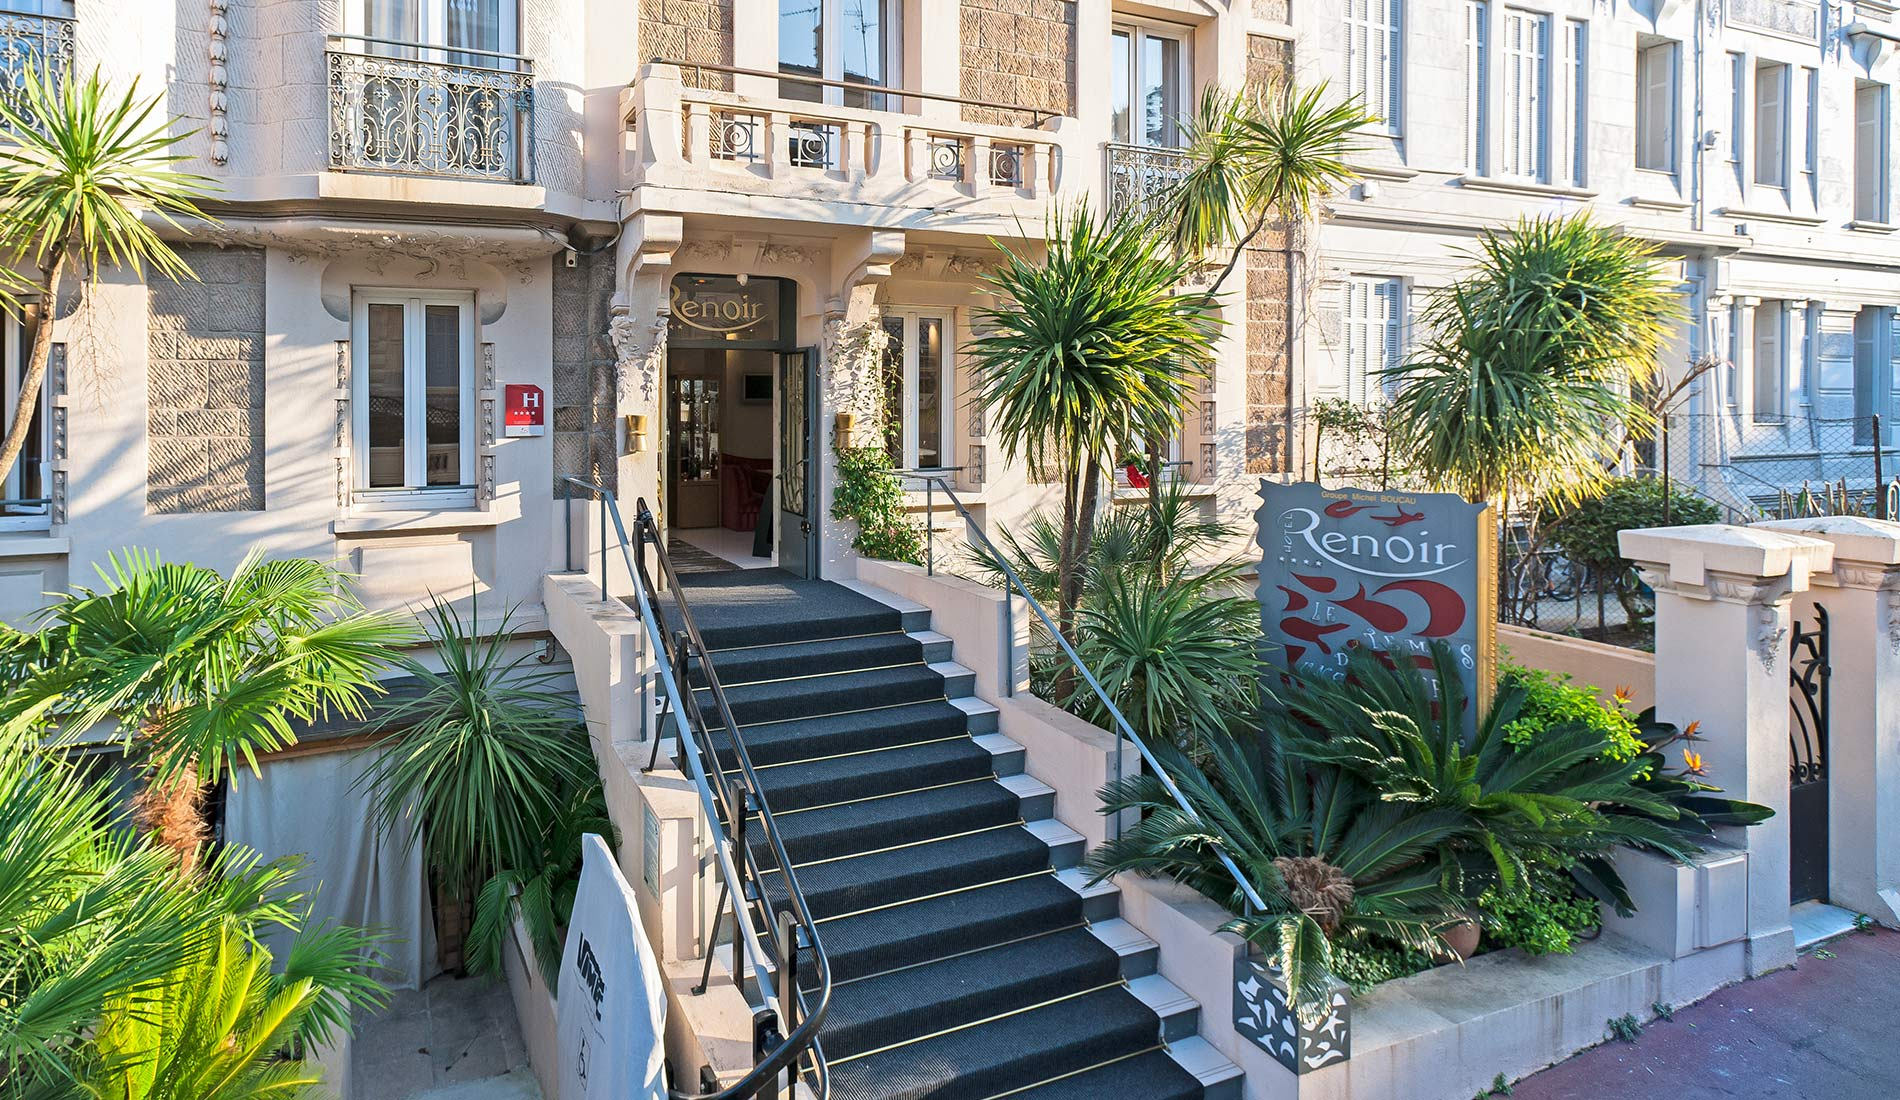 Charming property Hotel Renoir Cannes France 4 star front view entrance